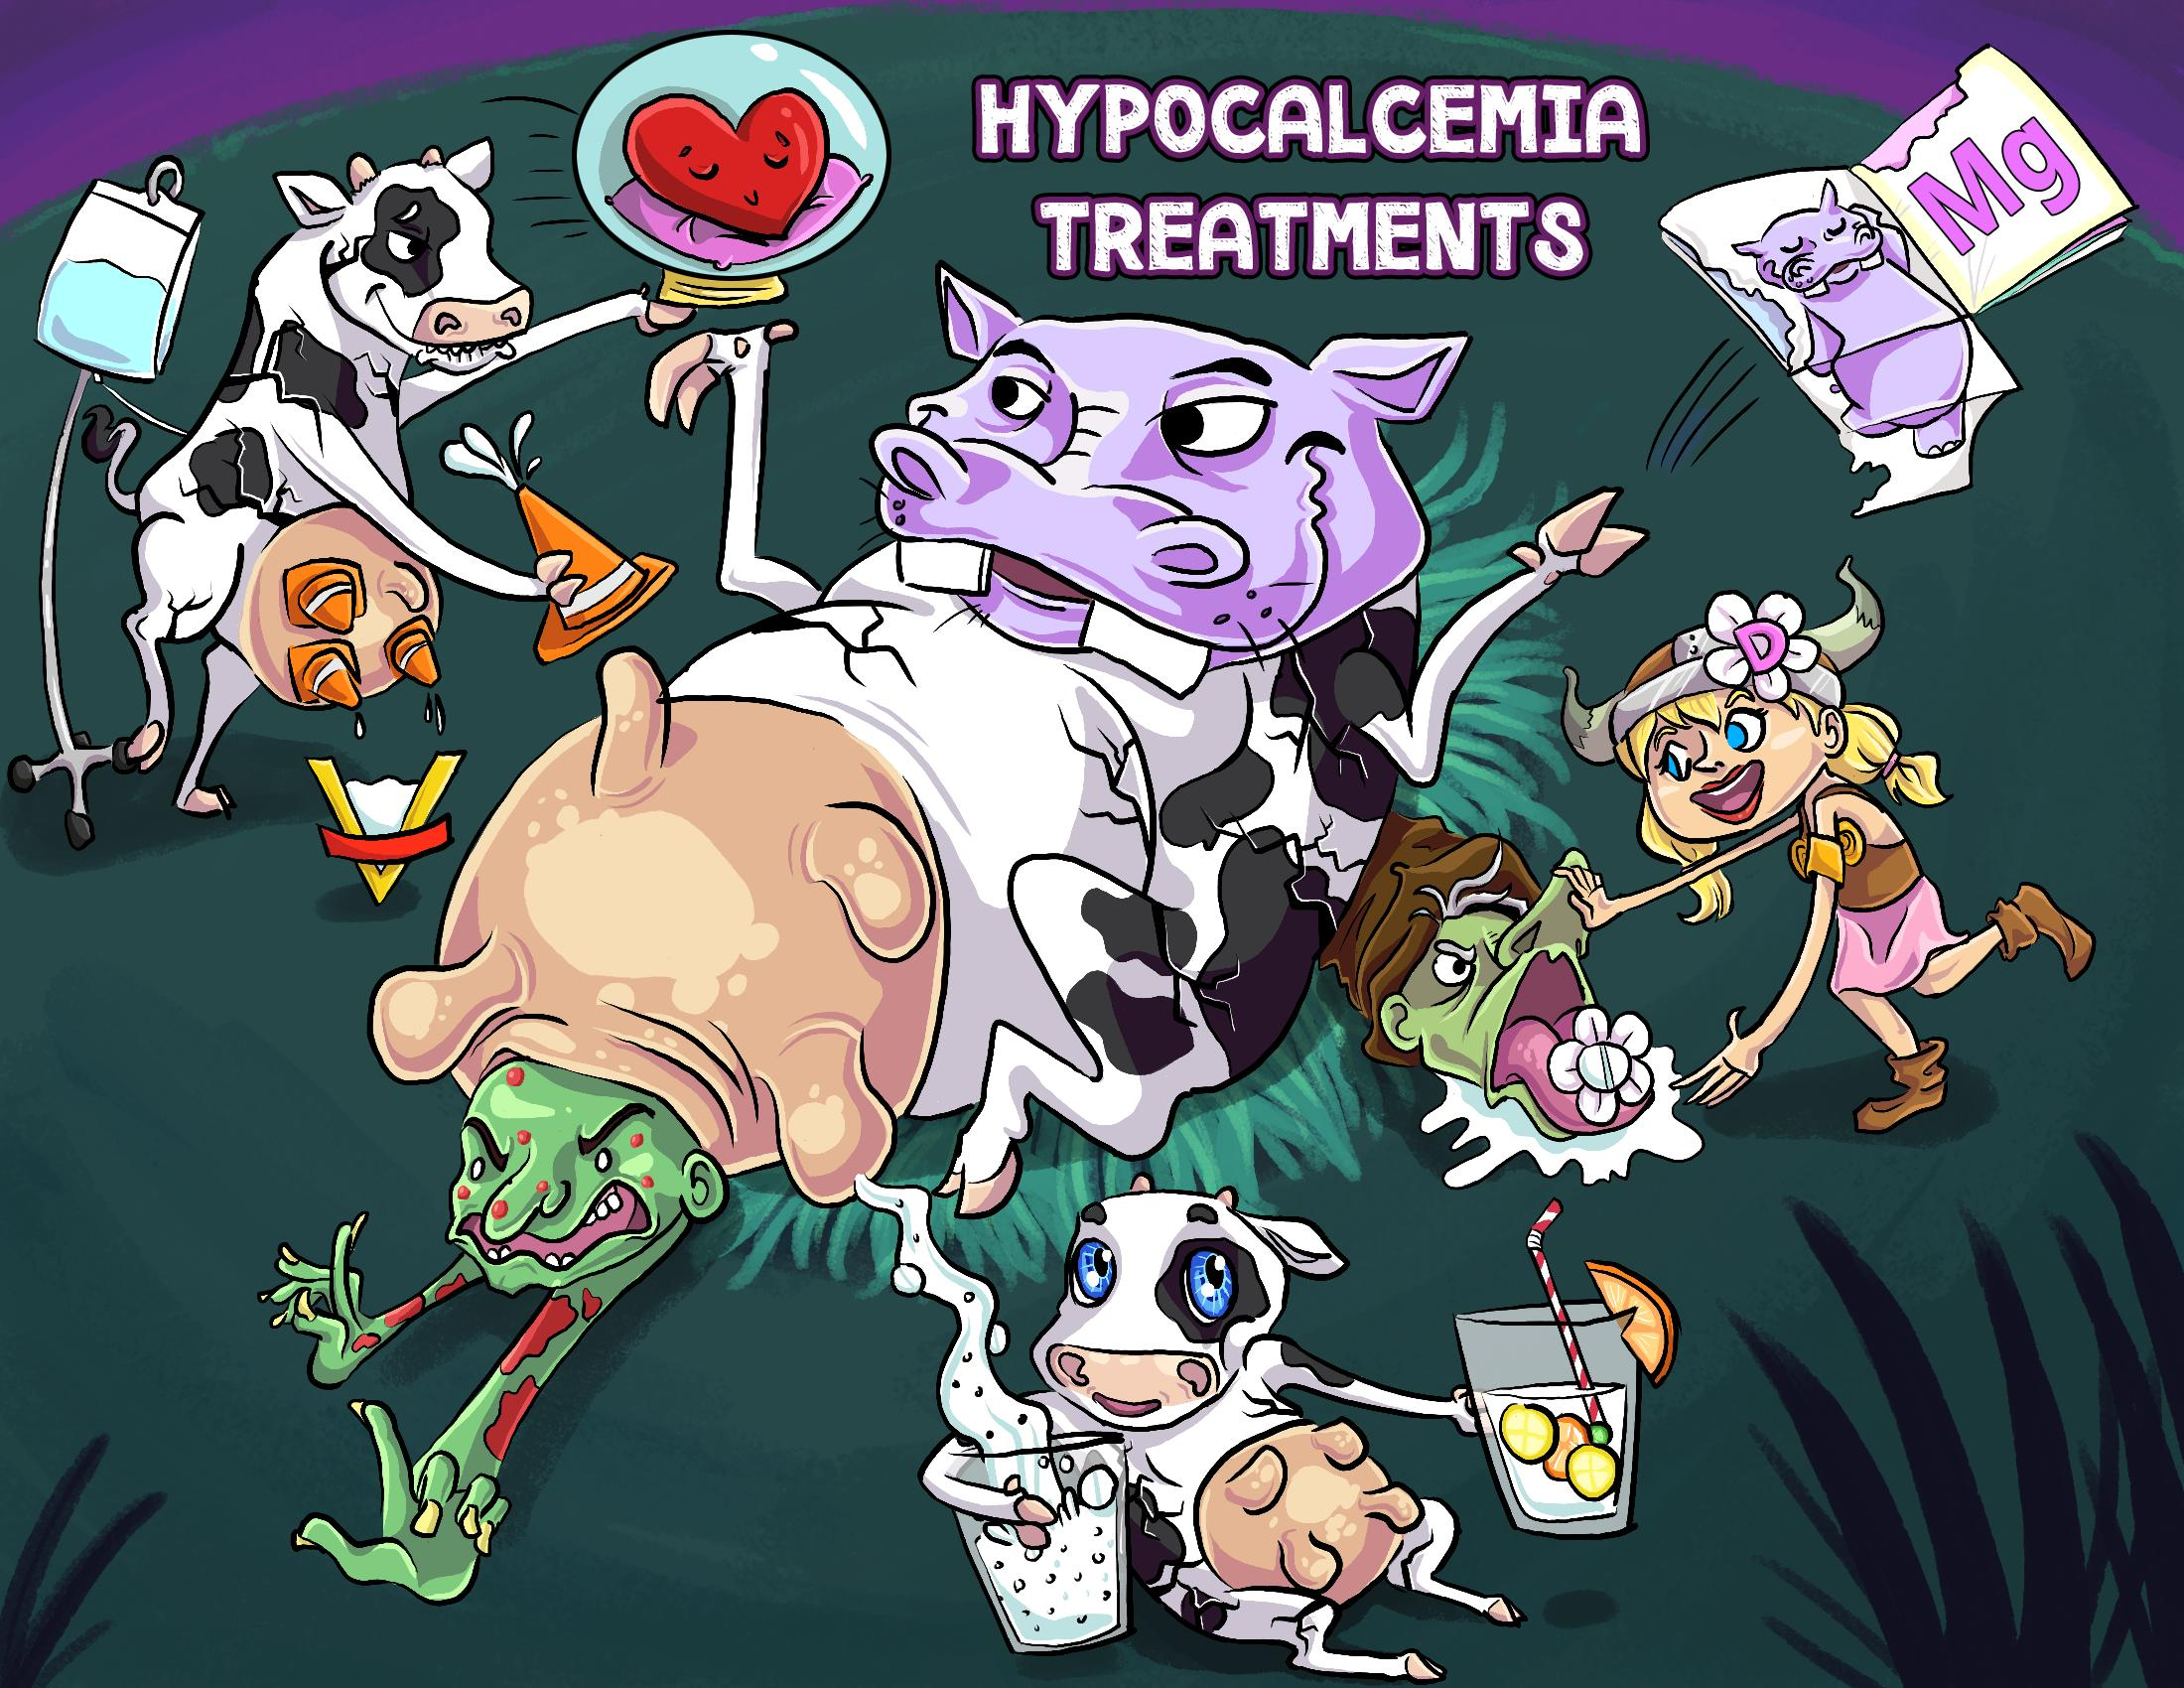 Hypocalcemia Treatments